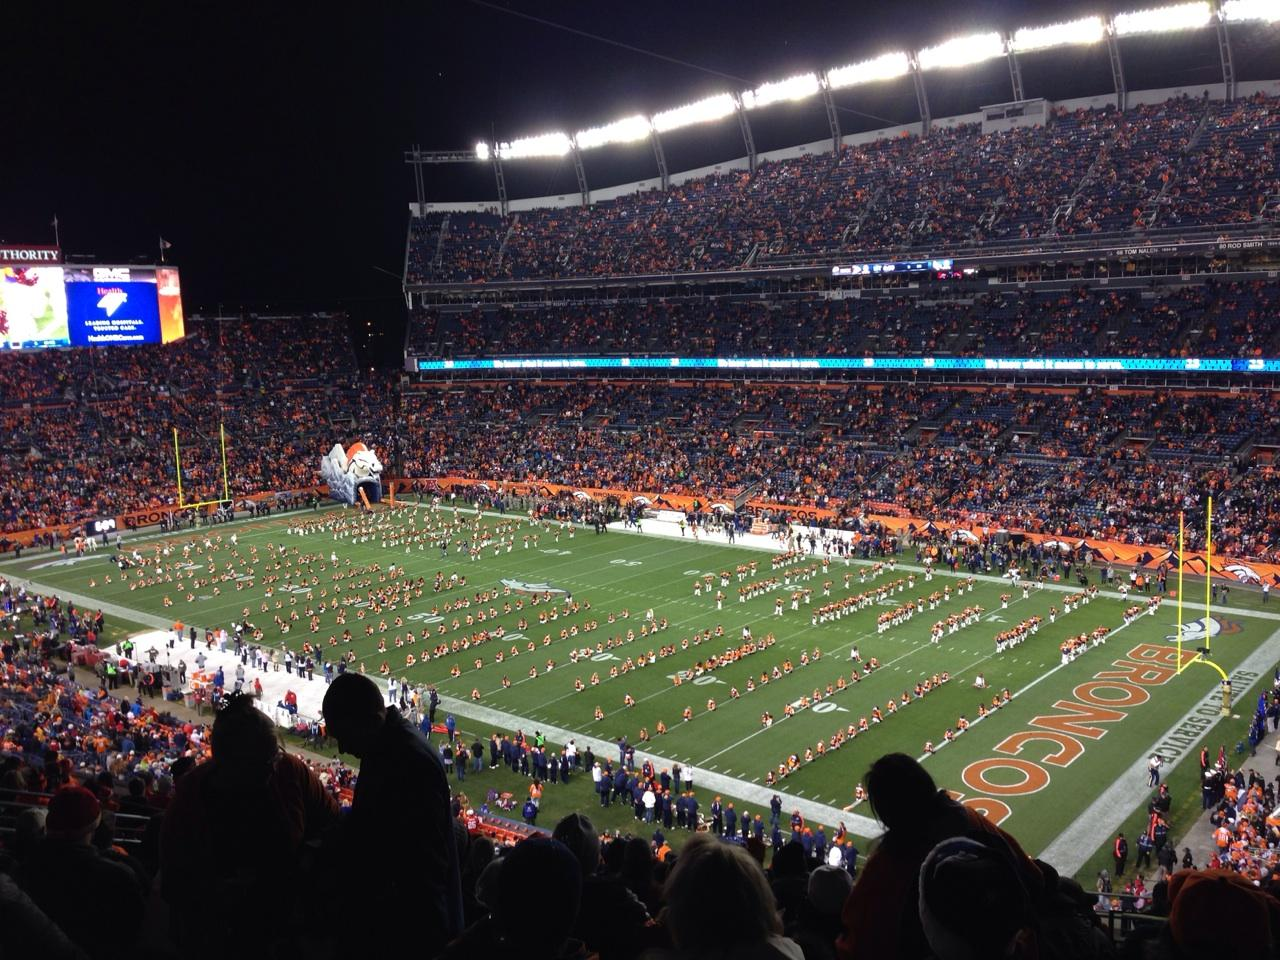 Broncos Stadium at Mile High Section 330 Row 17 Seat 4